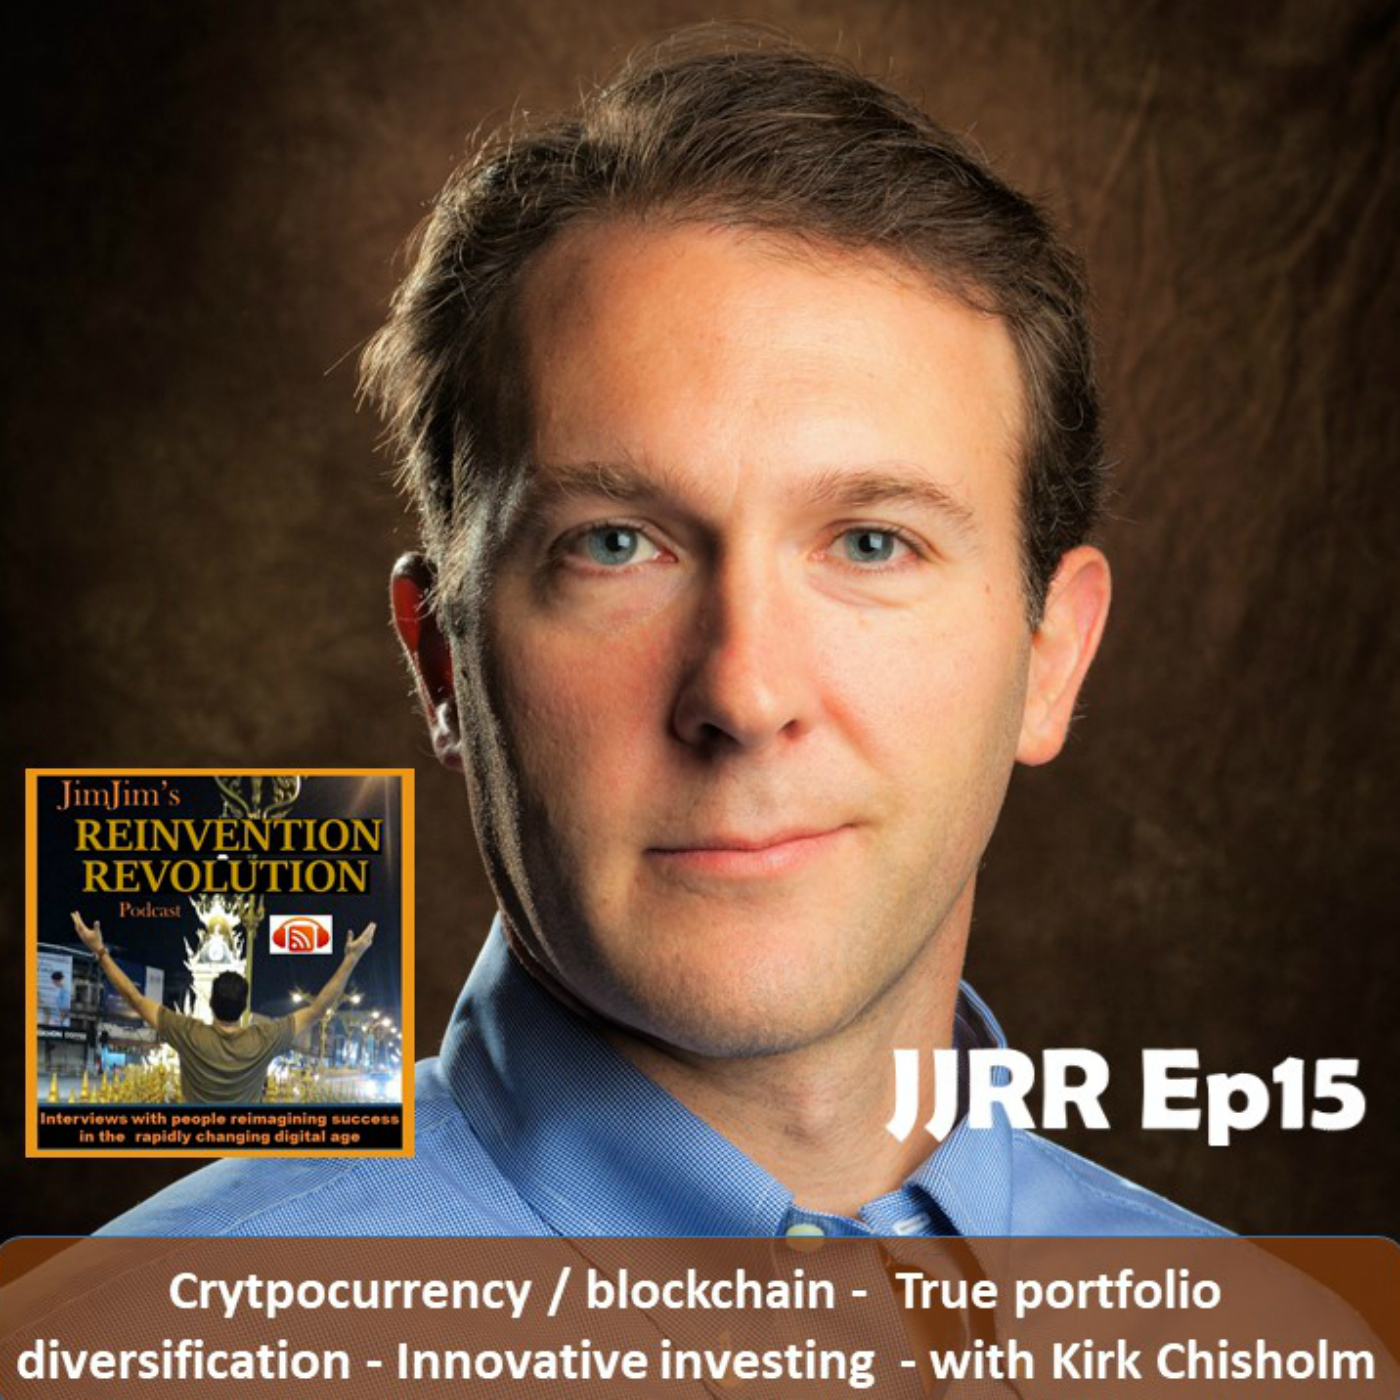 JJRR Ep15 Cryptocurrency / blockchain – True Portfolio diversification – Innovative Investing with Kirk Chisholm